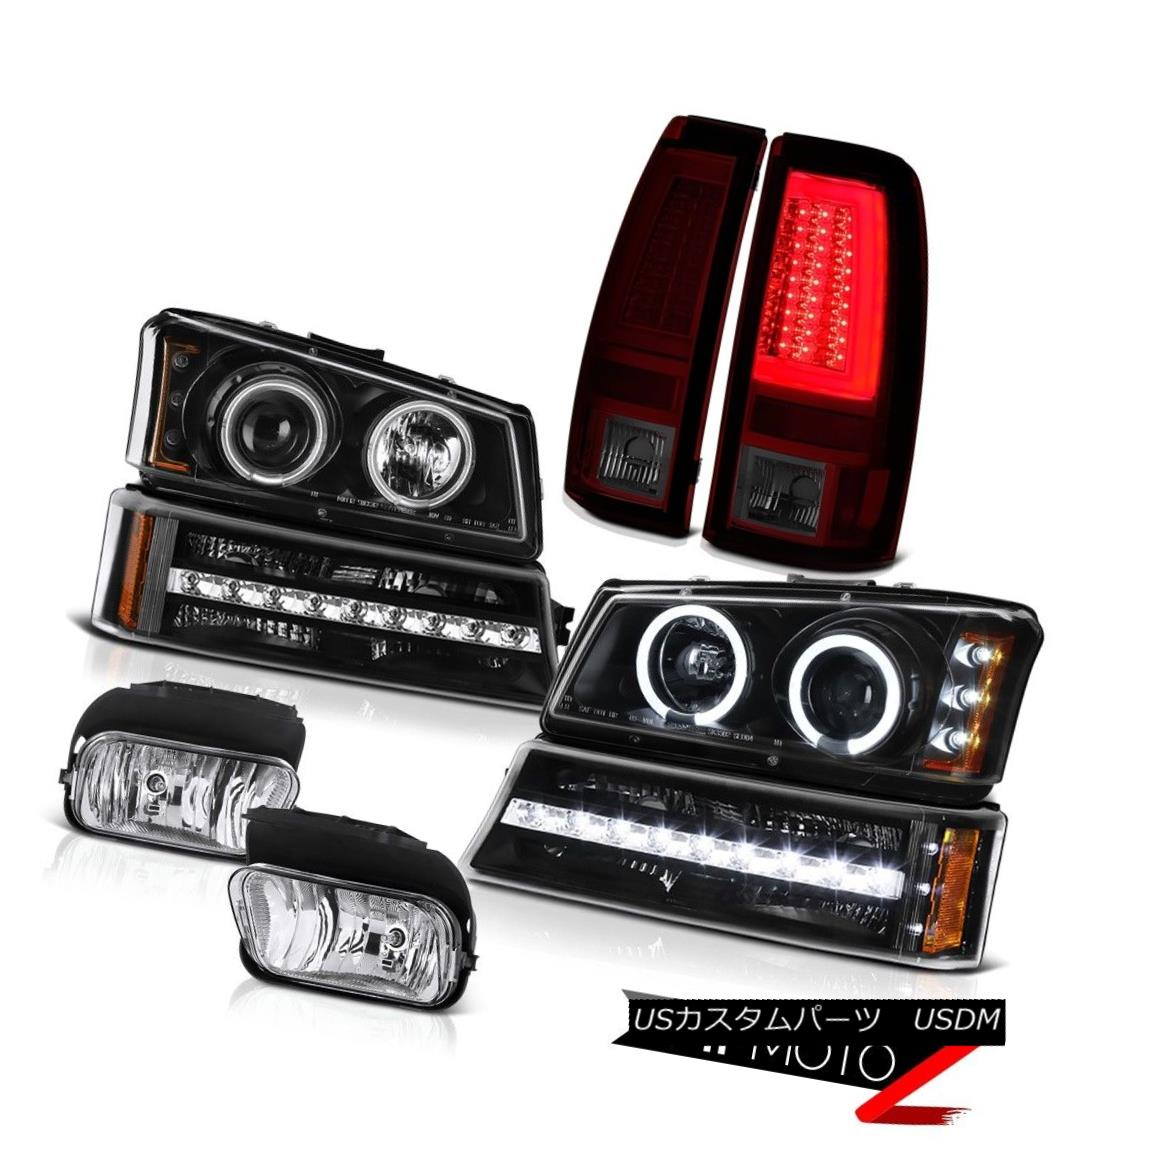 ヘッドライト 03 04 05 06 Silverado Red Smoke Parking Brake Lights Foglamps Light Headlamps 03 04 05 06 Silverado Red SmokeパーキングブレーキライトFoglamps Lightヘッドランプ